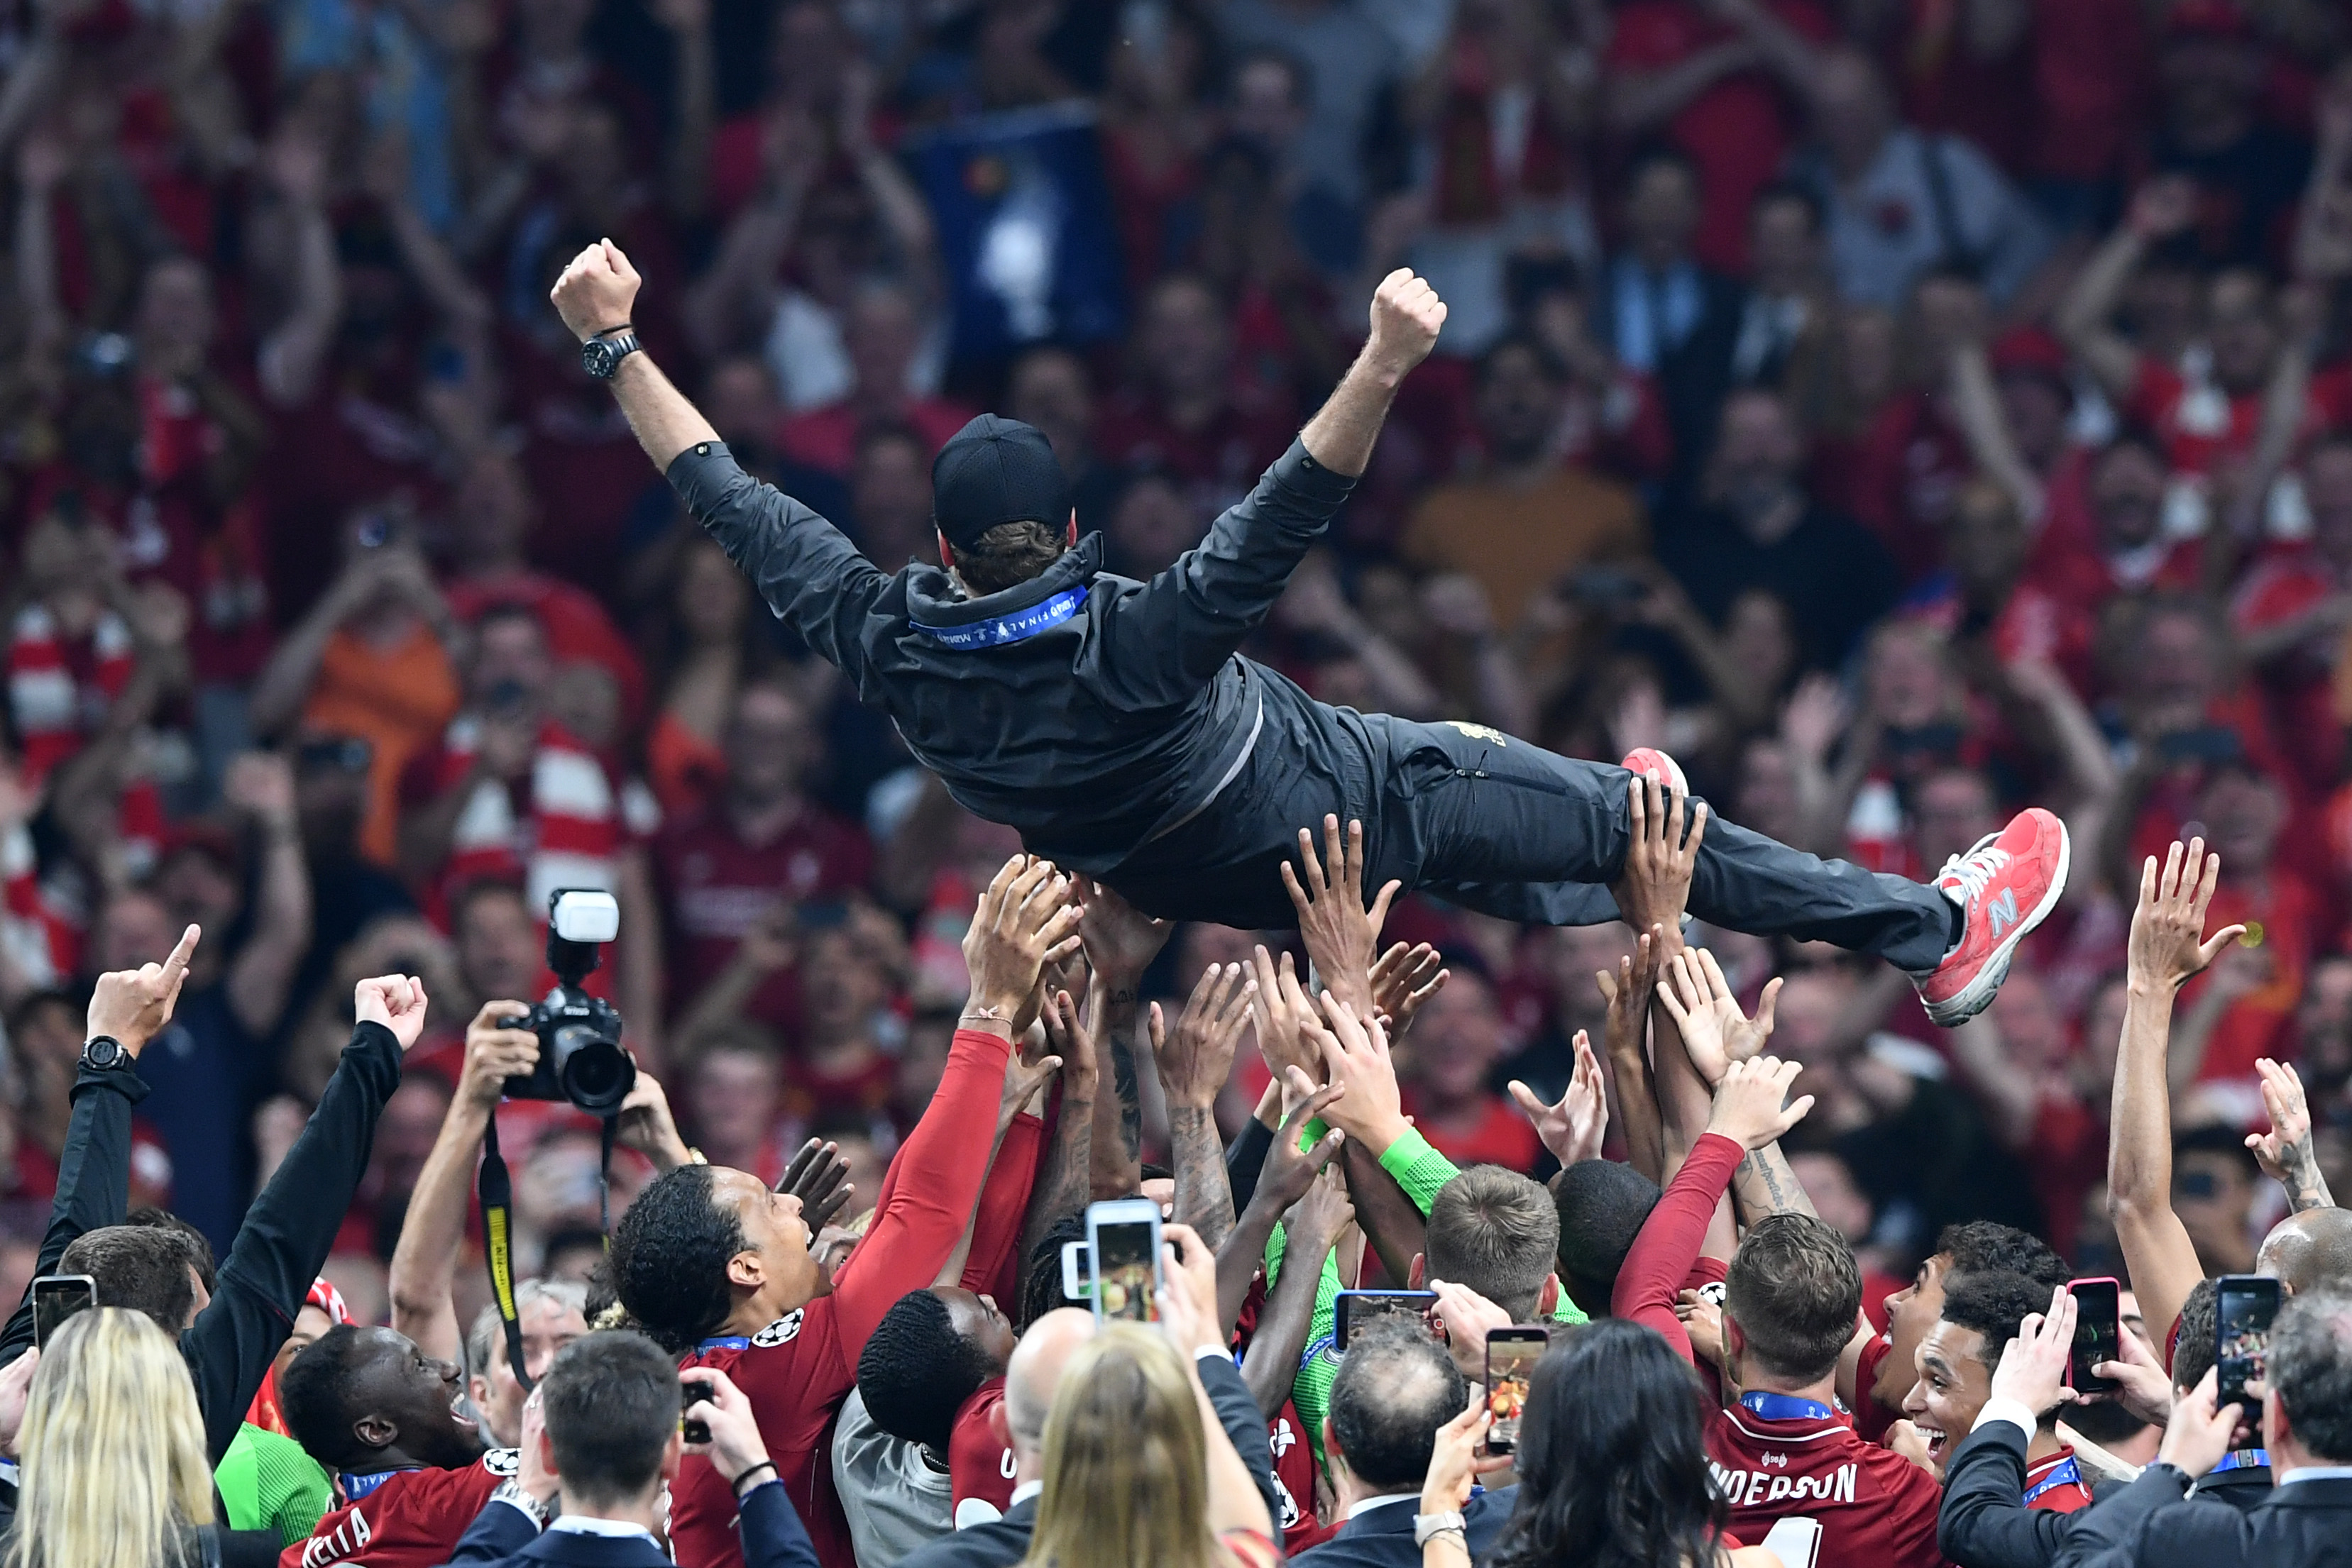 Watch: Jürgen Klopp's Post Champions League Final Celebrations